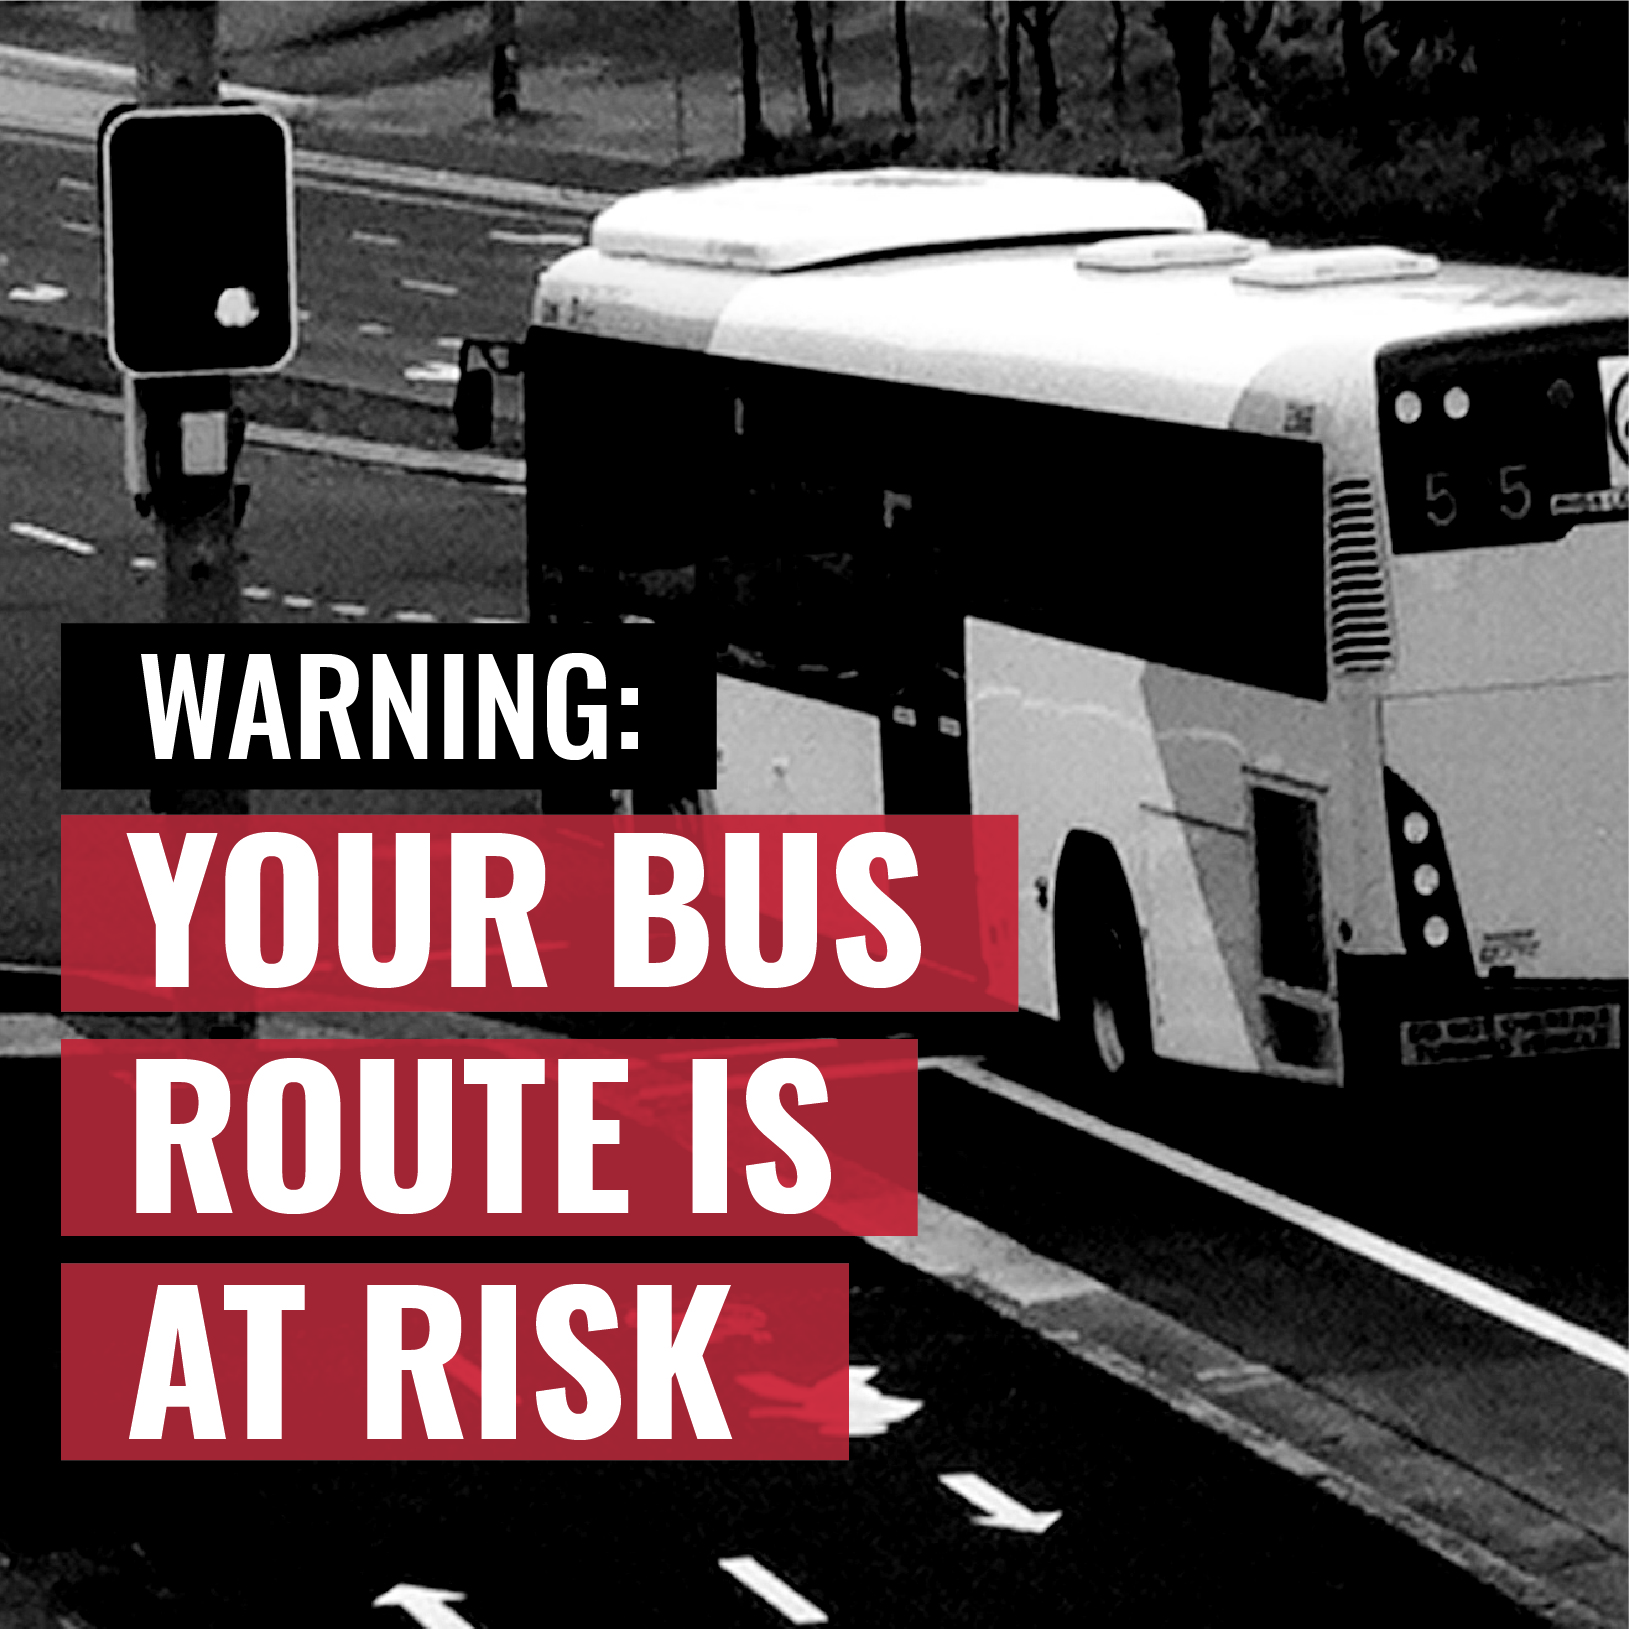 Your bus route is at risk